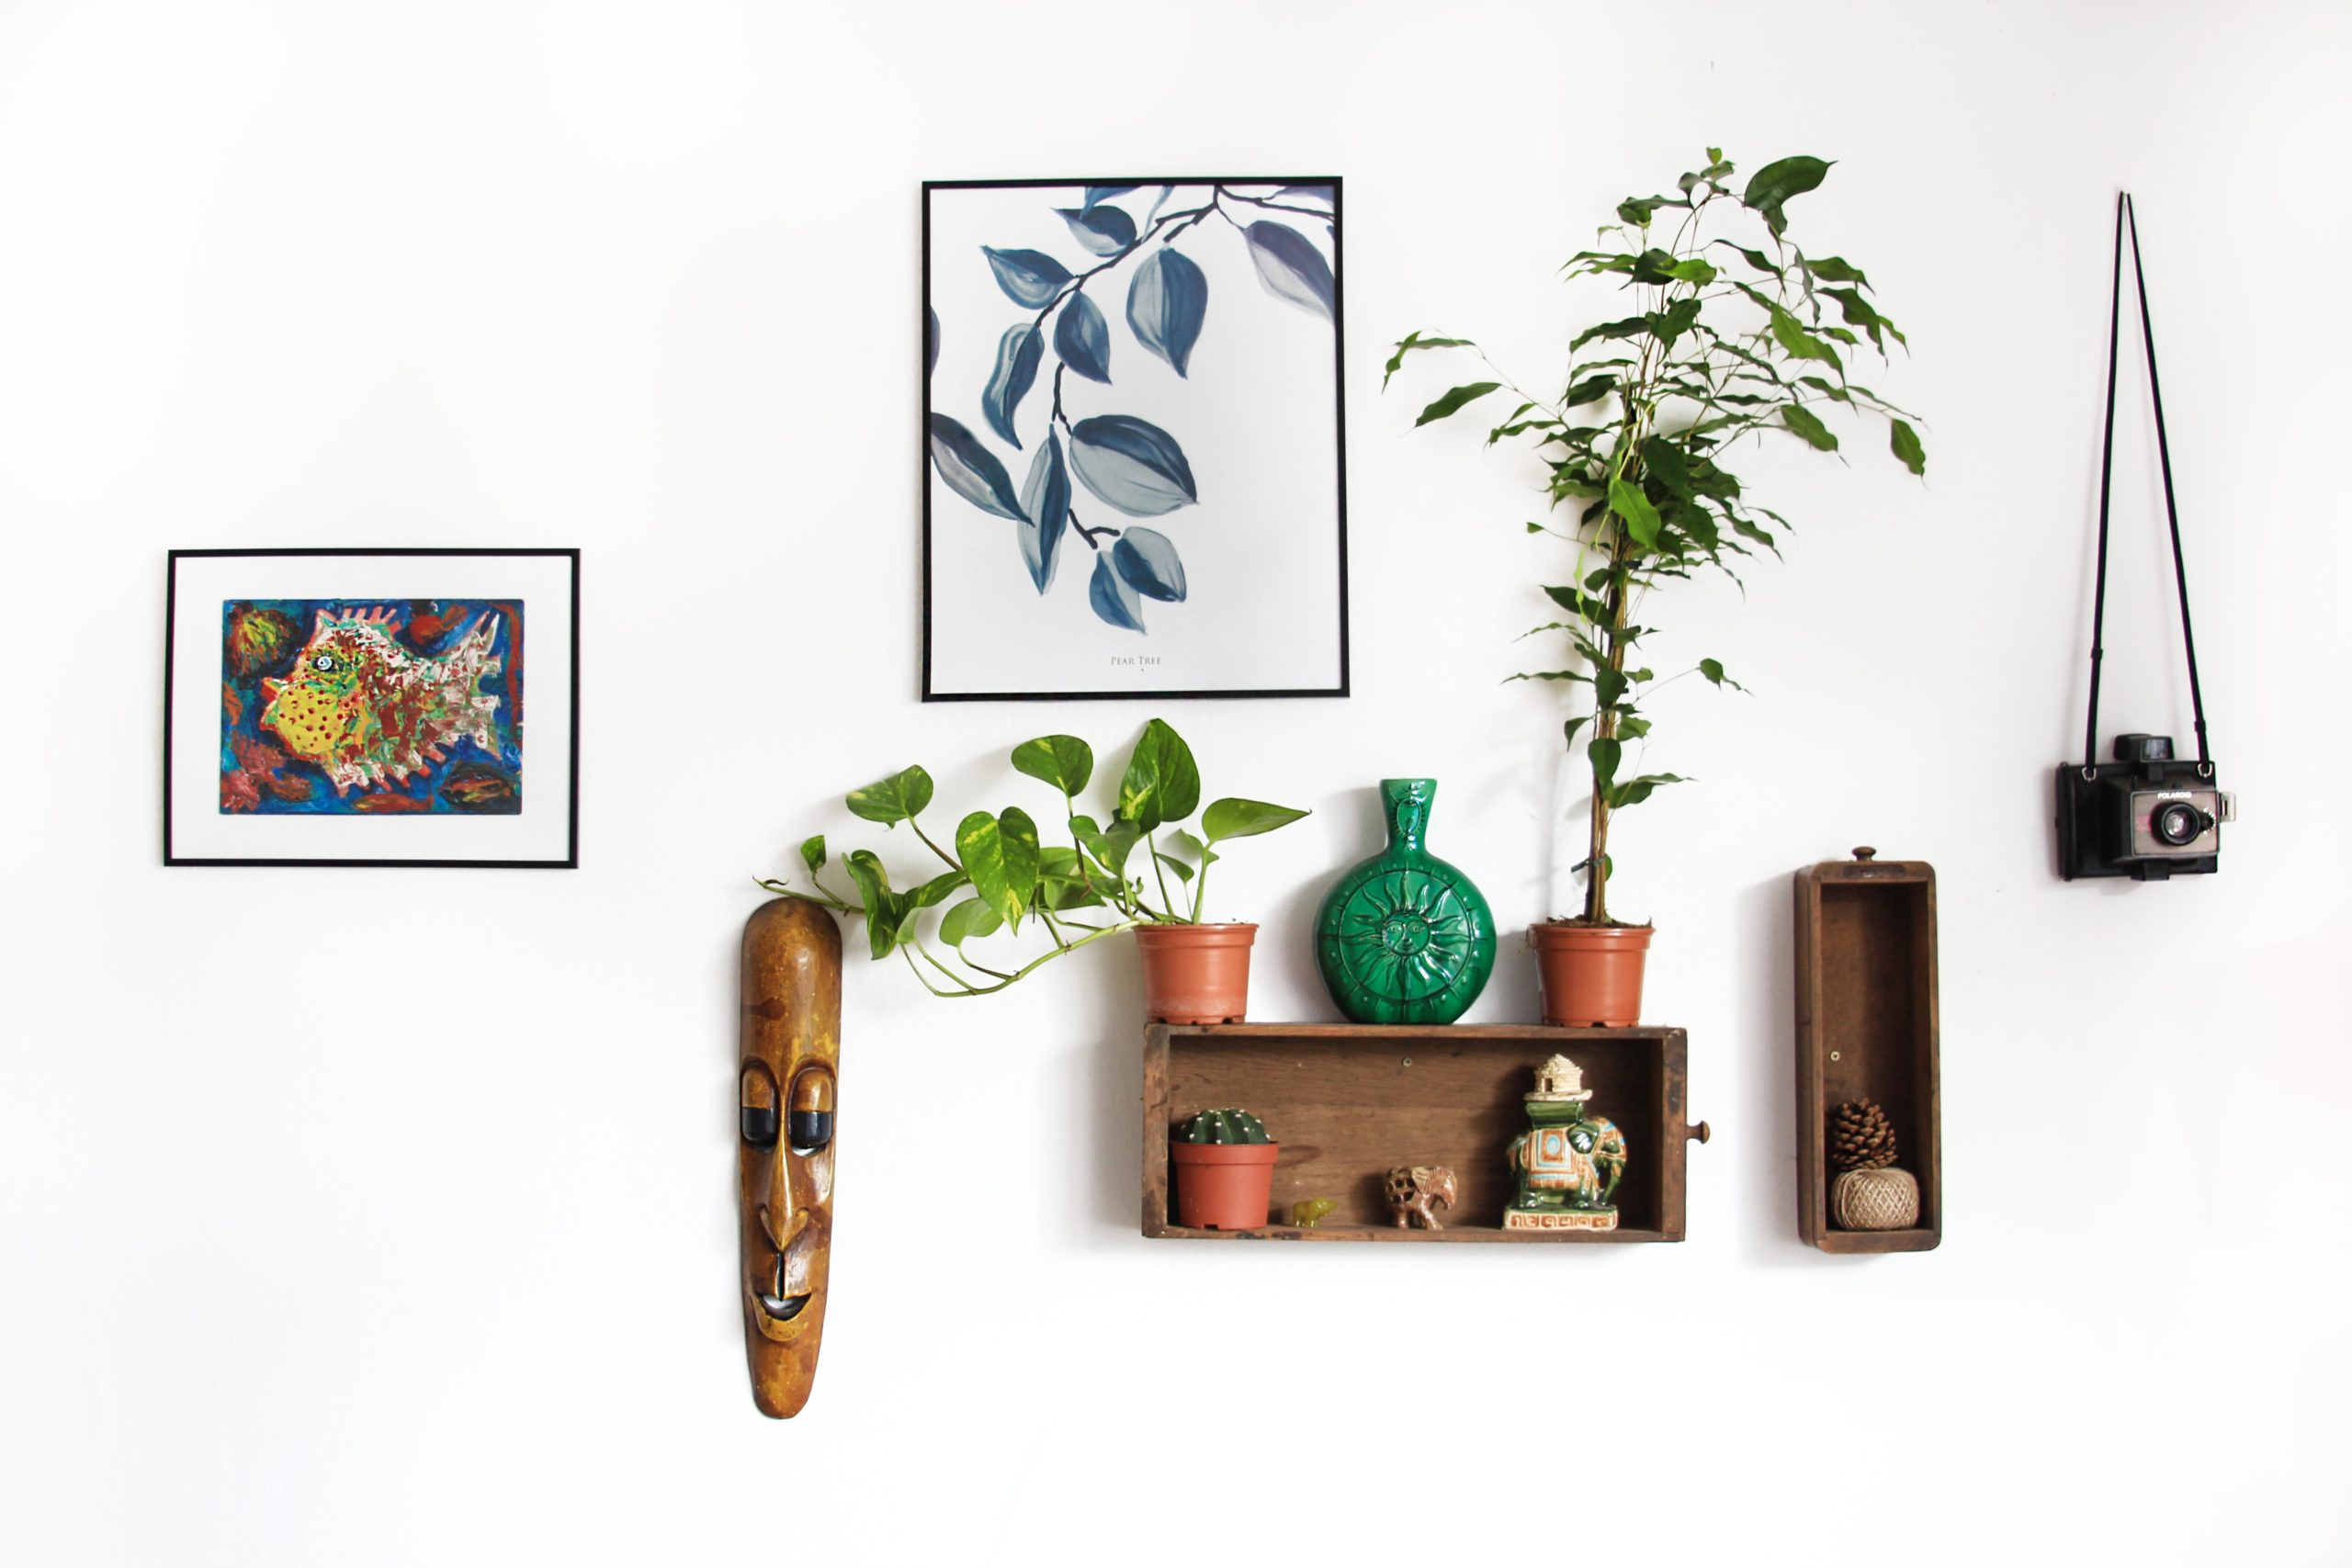 Expert Tips for Decorating Your Wall